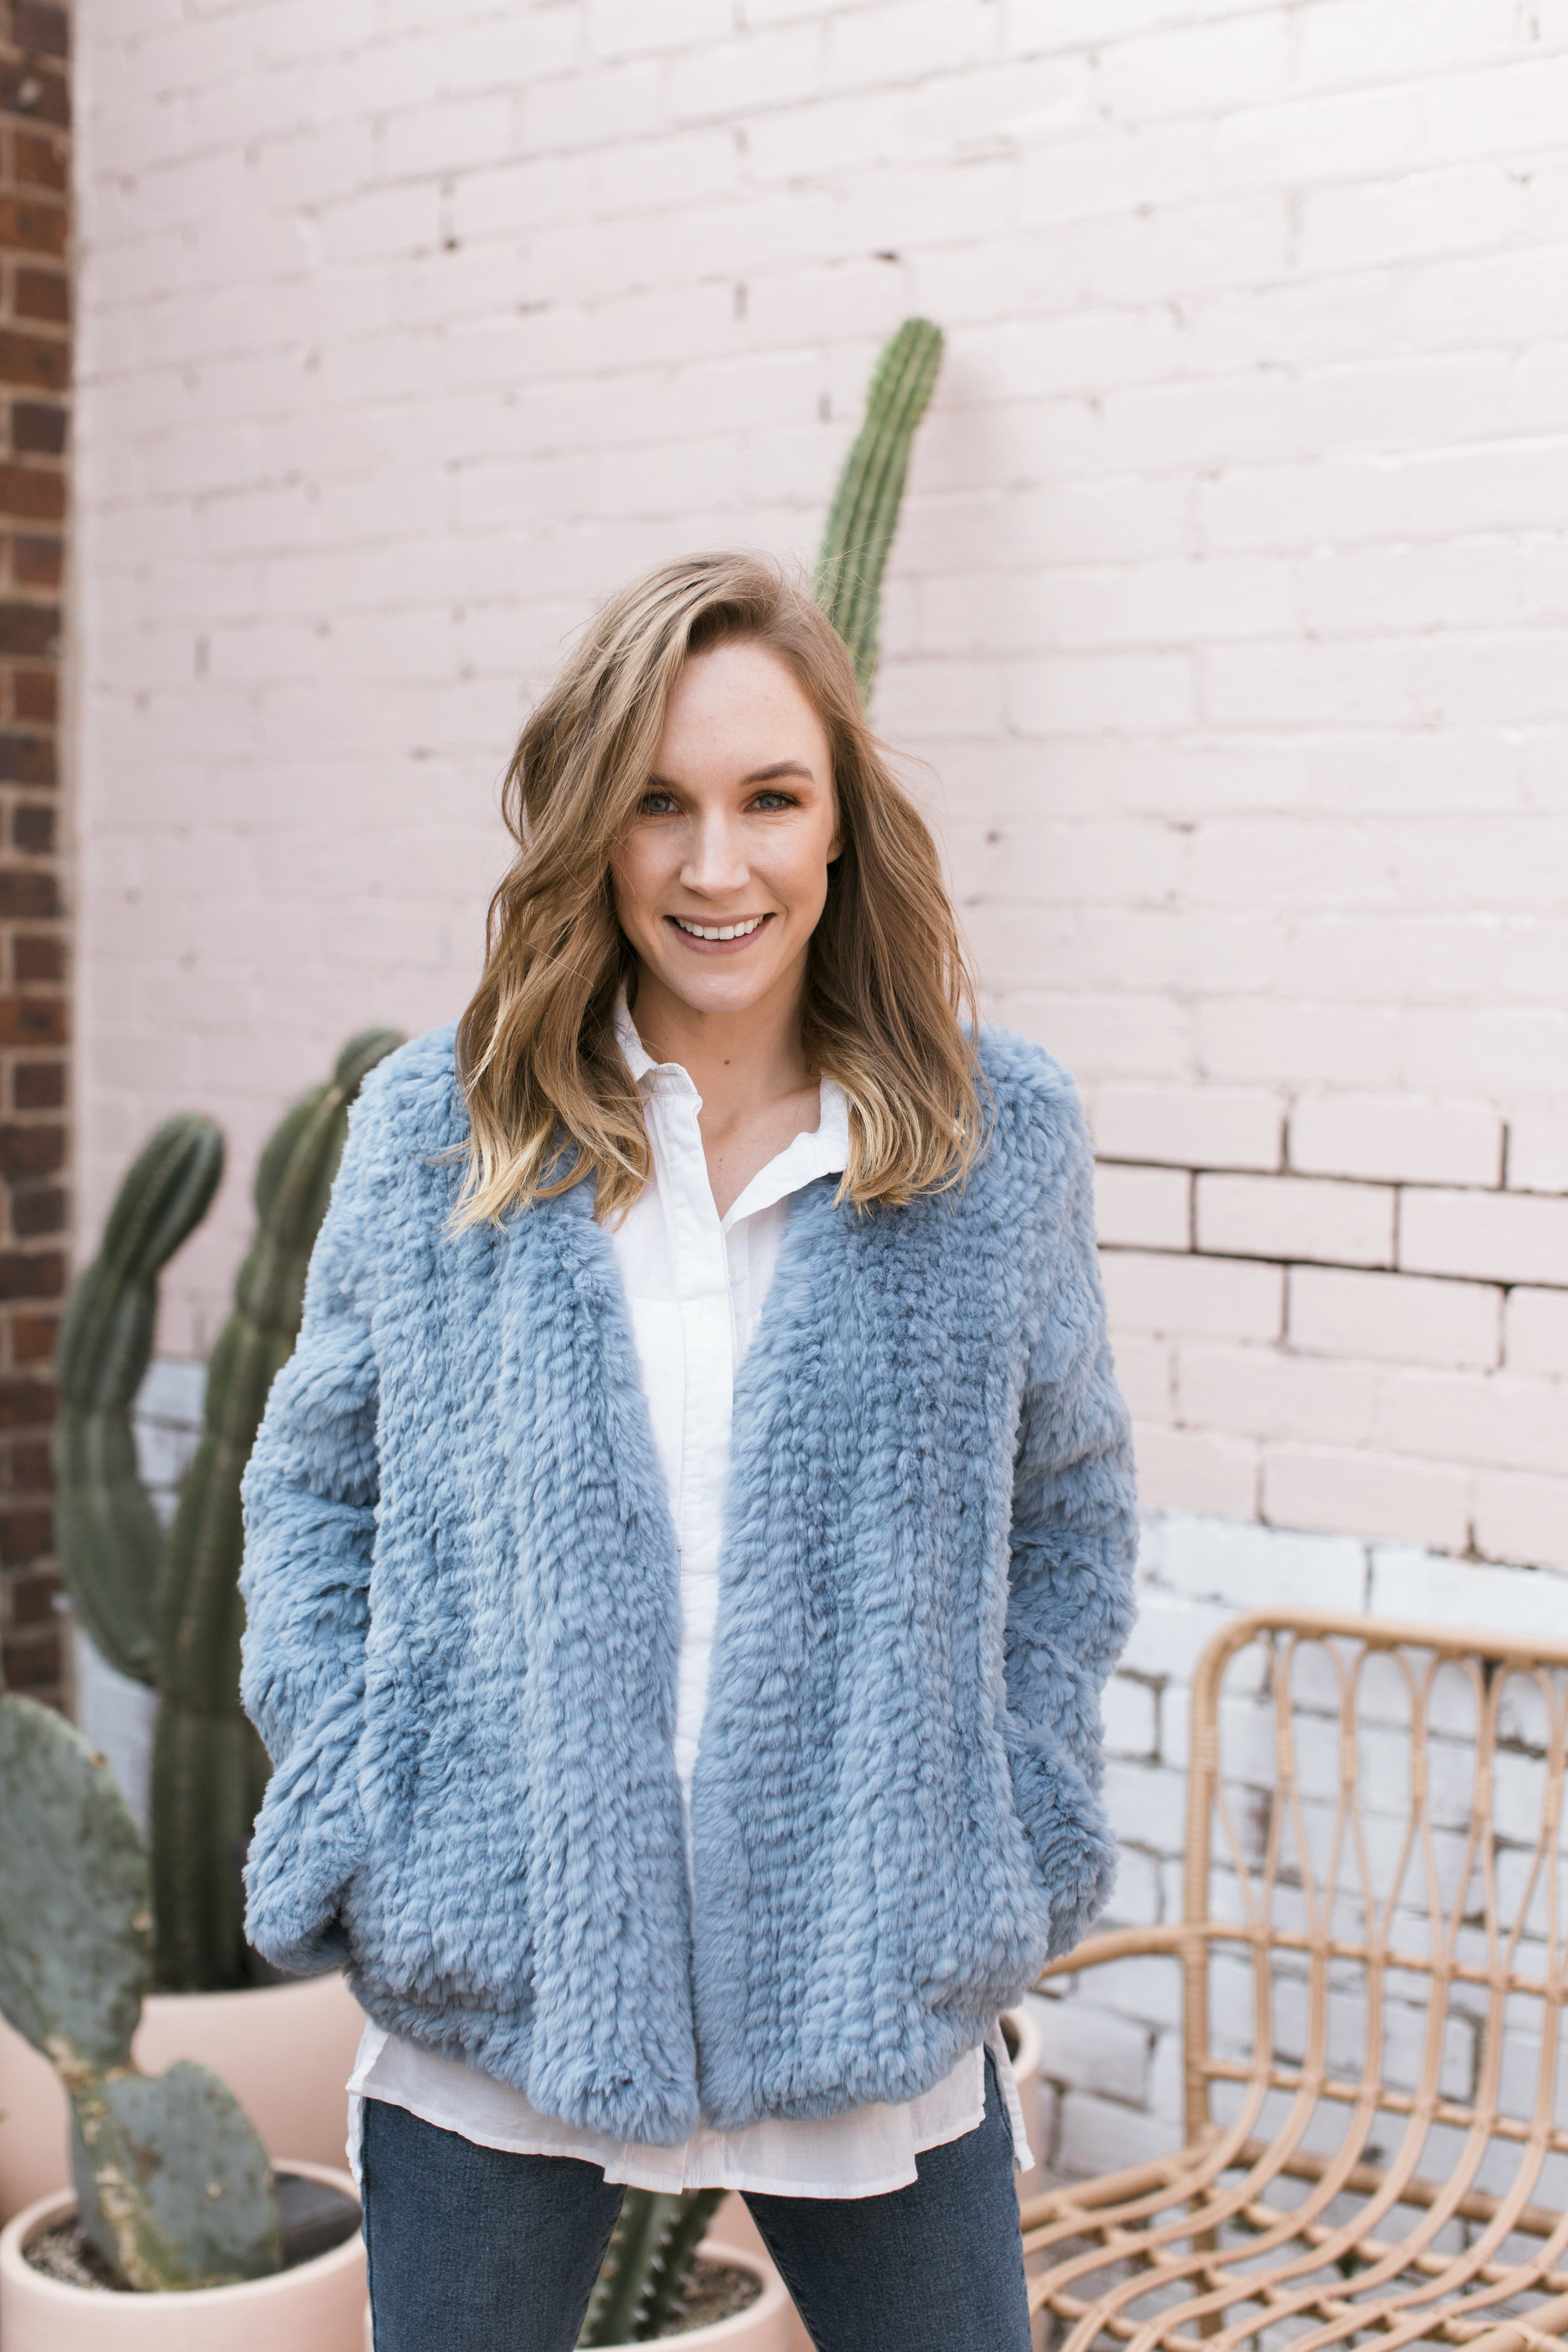 Launching The Healthy Hustlers Podcast in June 2018, the show skyrocketed to number 1 health show on iTunes and debuted at number 5 of their top charts. Interviewing some of the most influential people in the Australian health and wellbeing industry, Madelyn aims to inspire her community to inject healthy habits into their daily lives to help make their hustle healthy. -